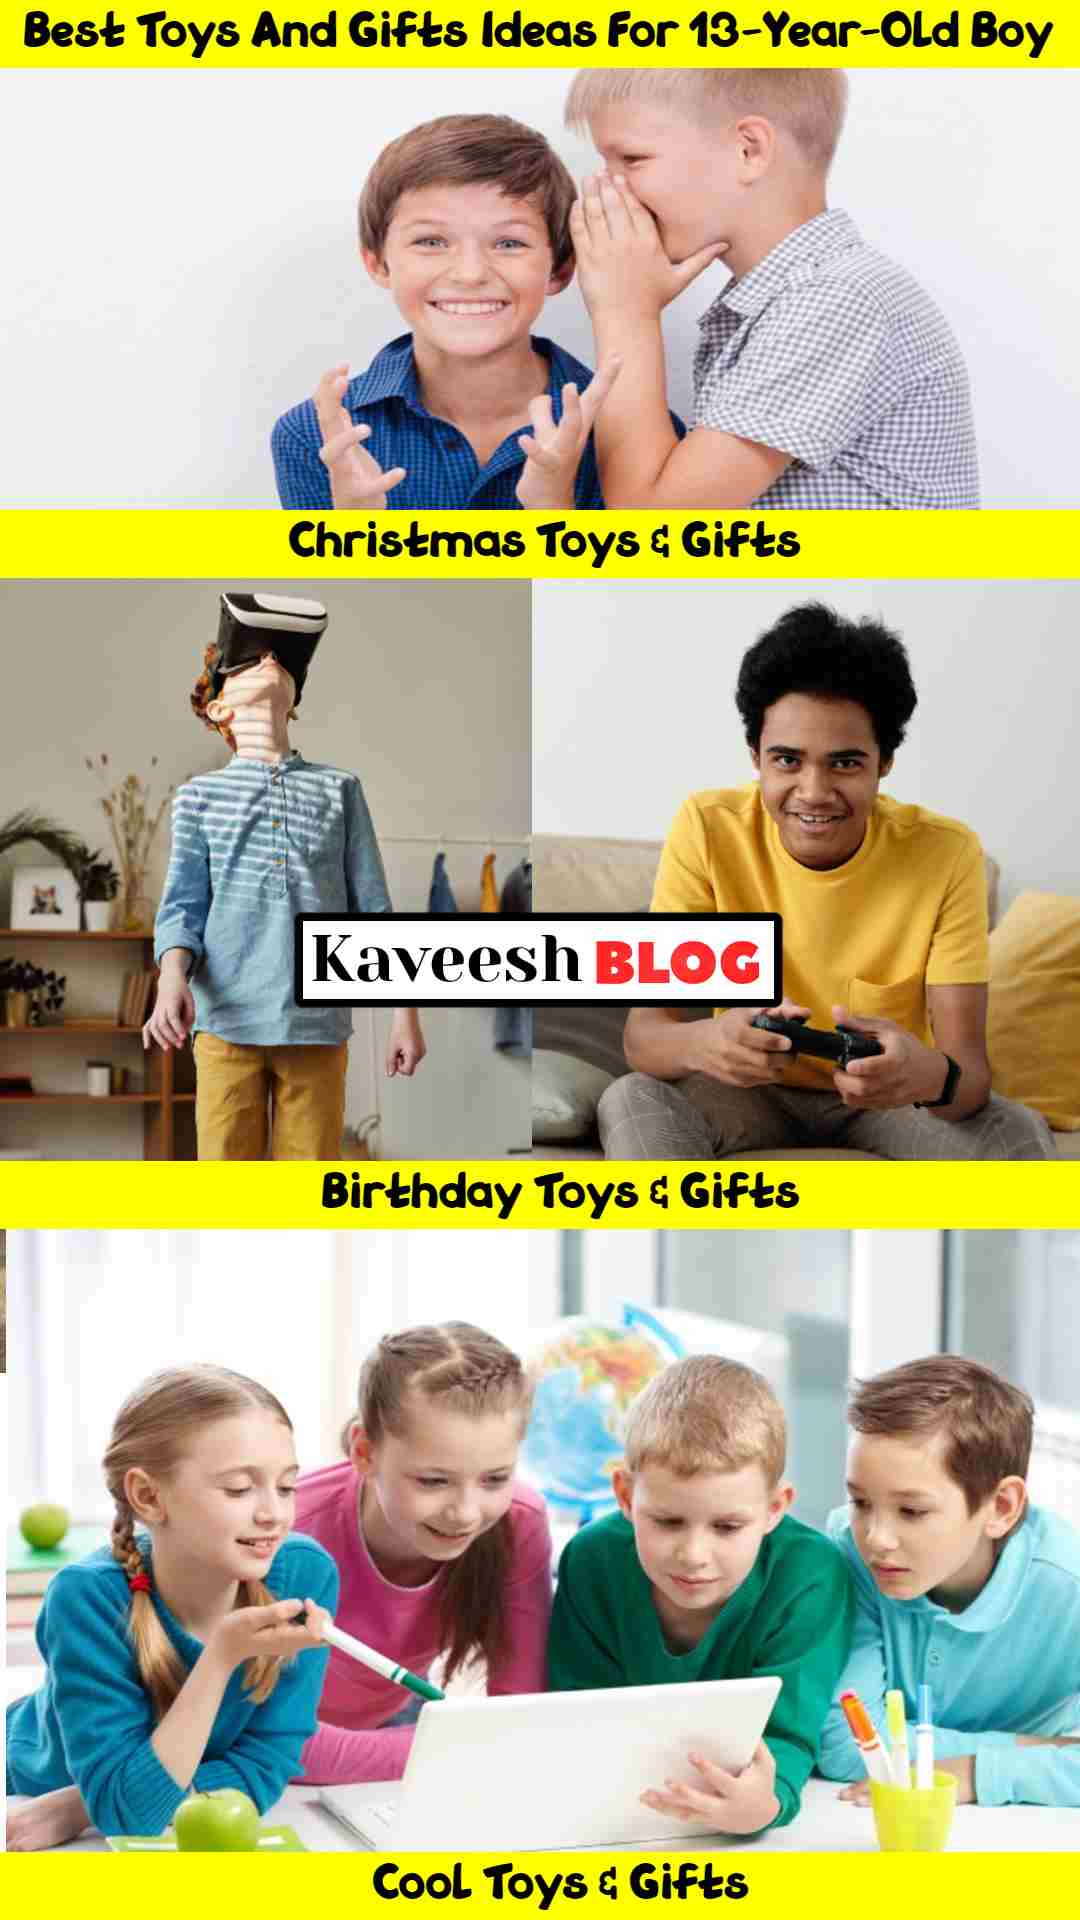 40 Best Gifts For 13-year-old Boys In (2020) Toys & Gifts Ideas For Boys (1)